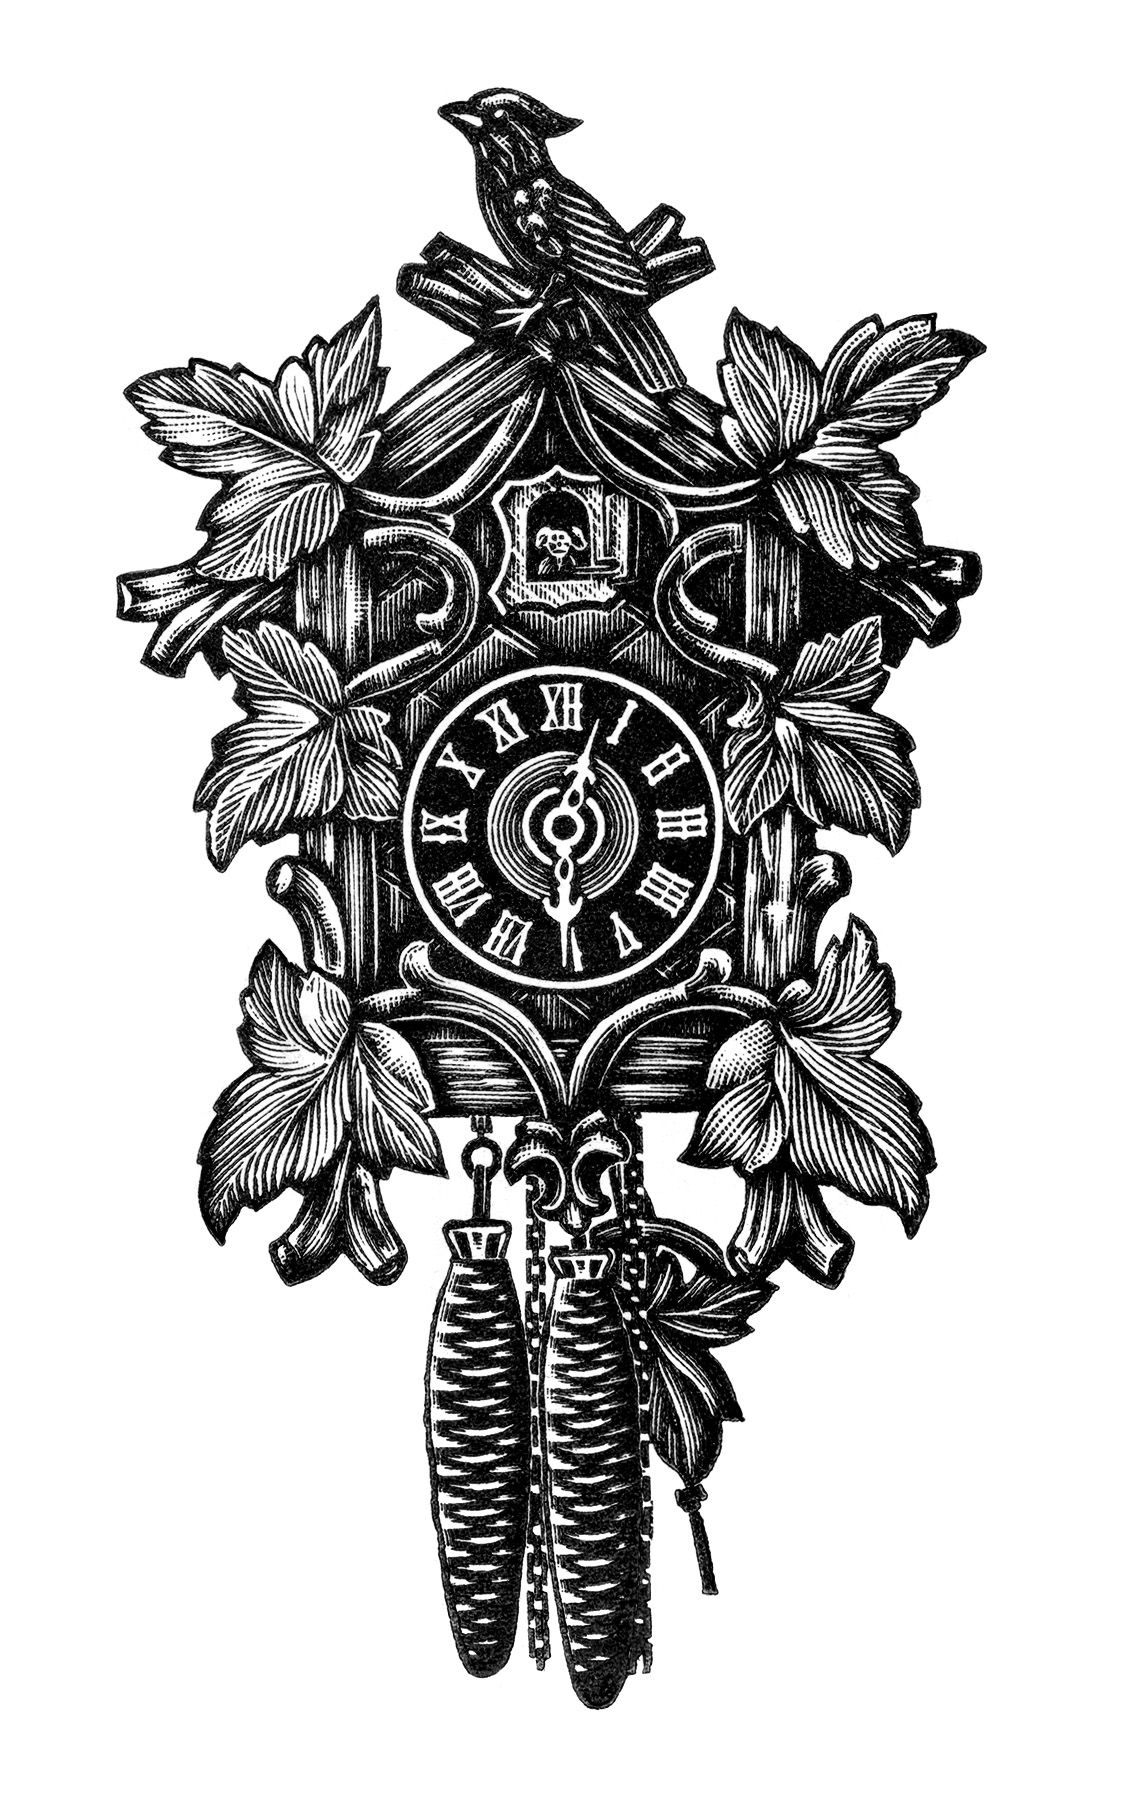 vintage clock clip art, black and white clipart, cuckoo ...